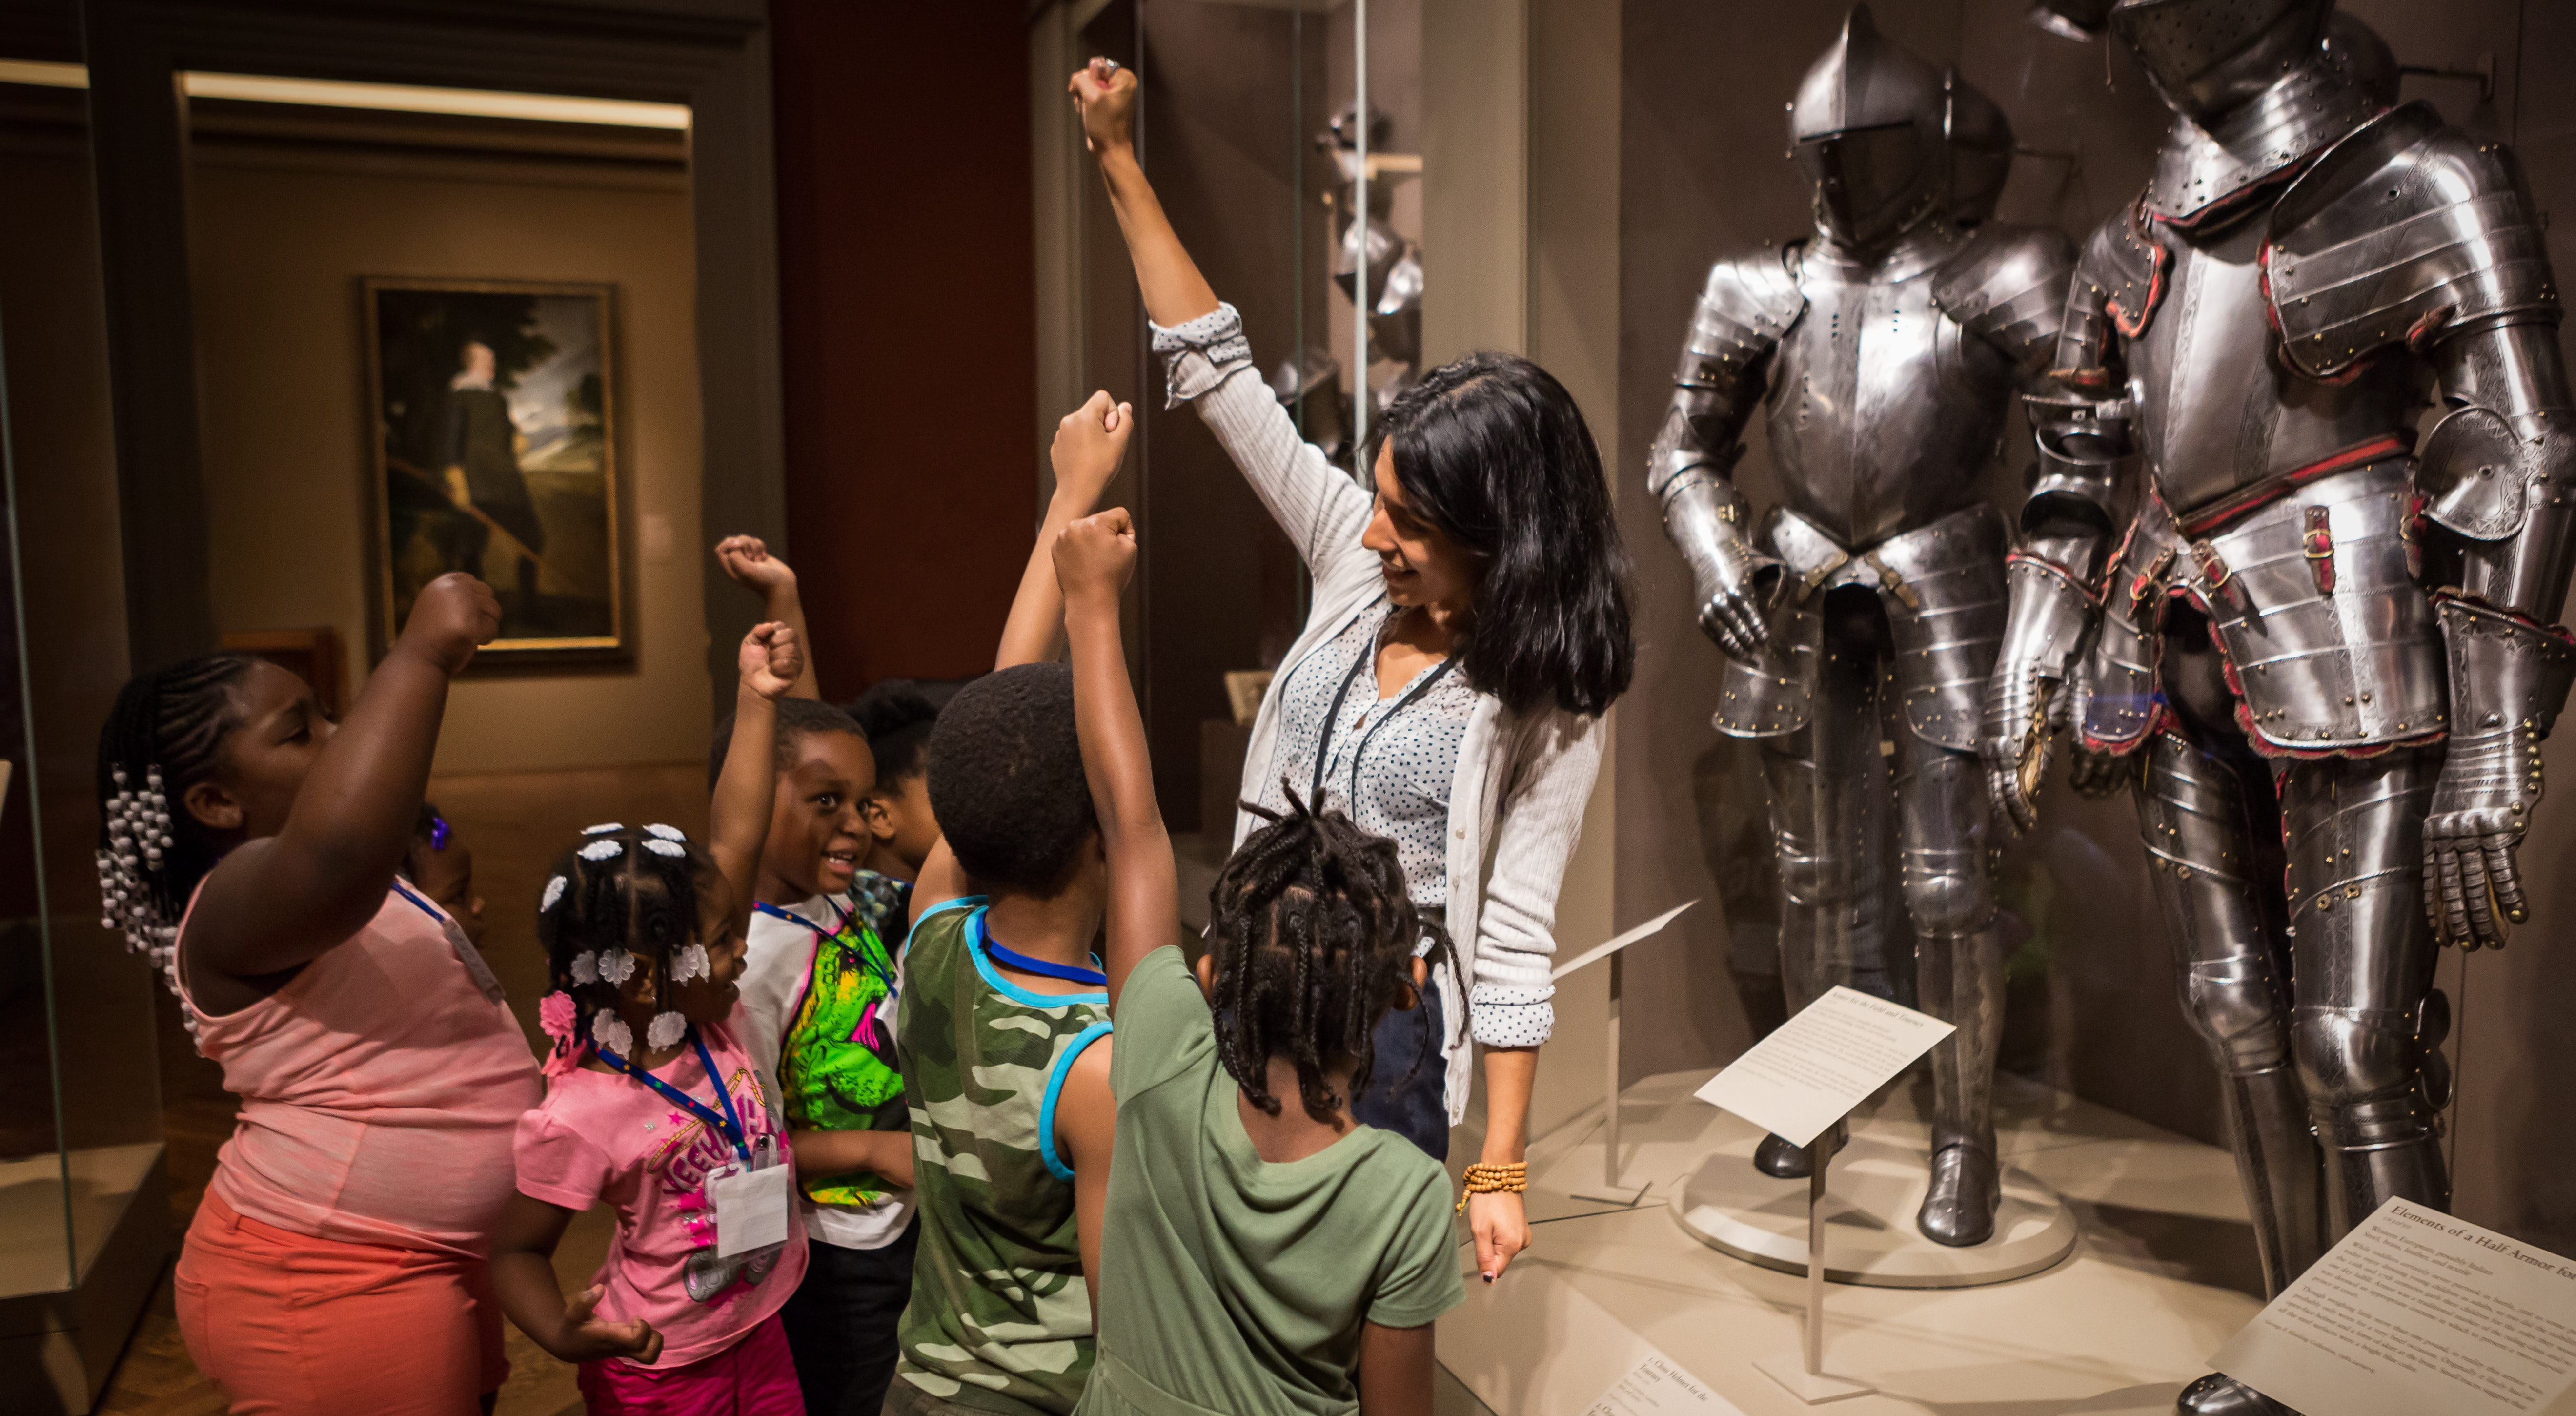 A group of students interact with a docent in front of two suits of armor in the galleries